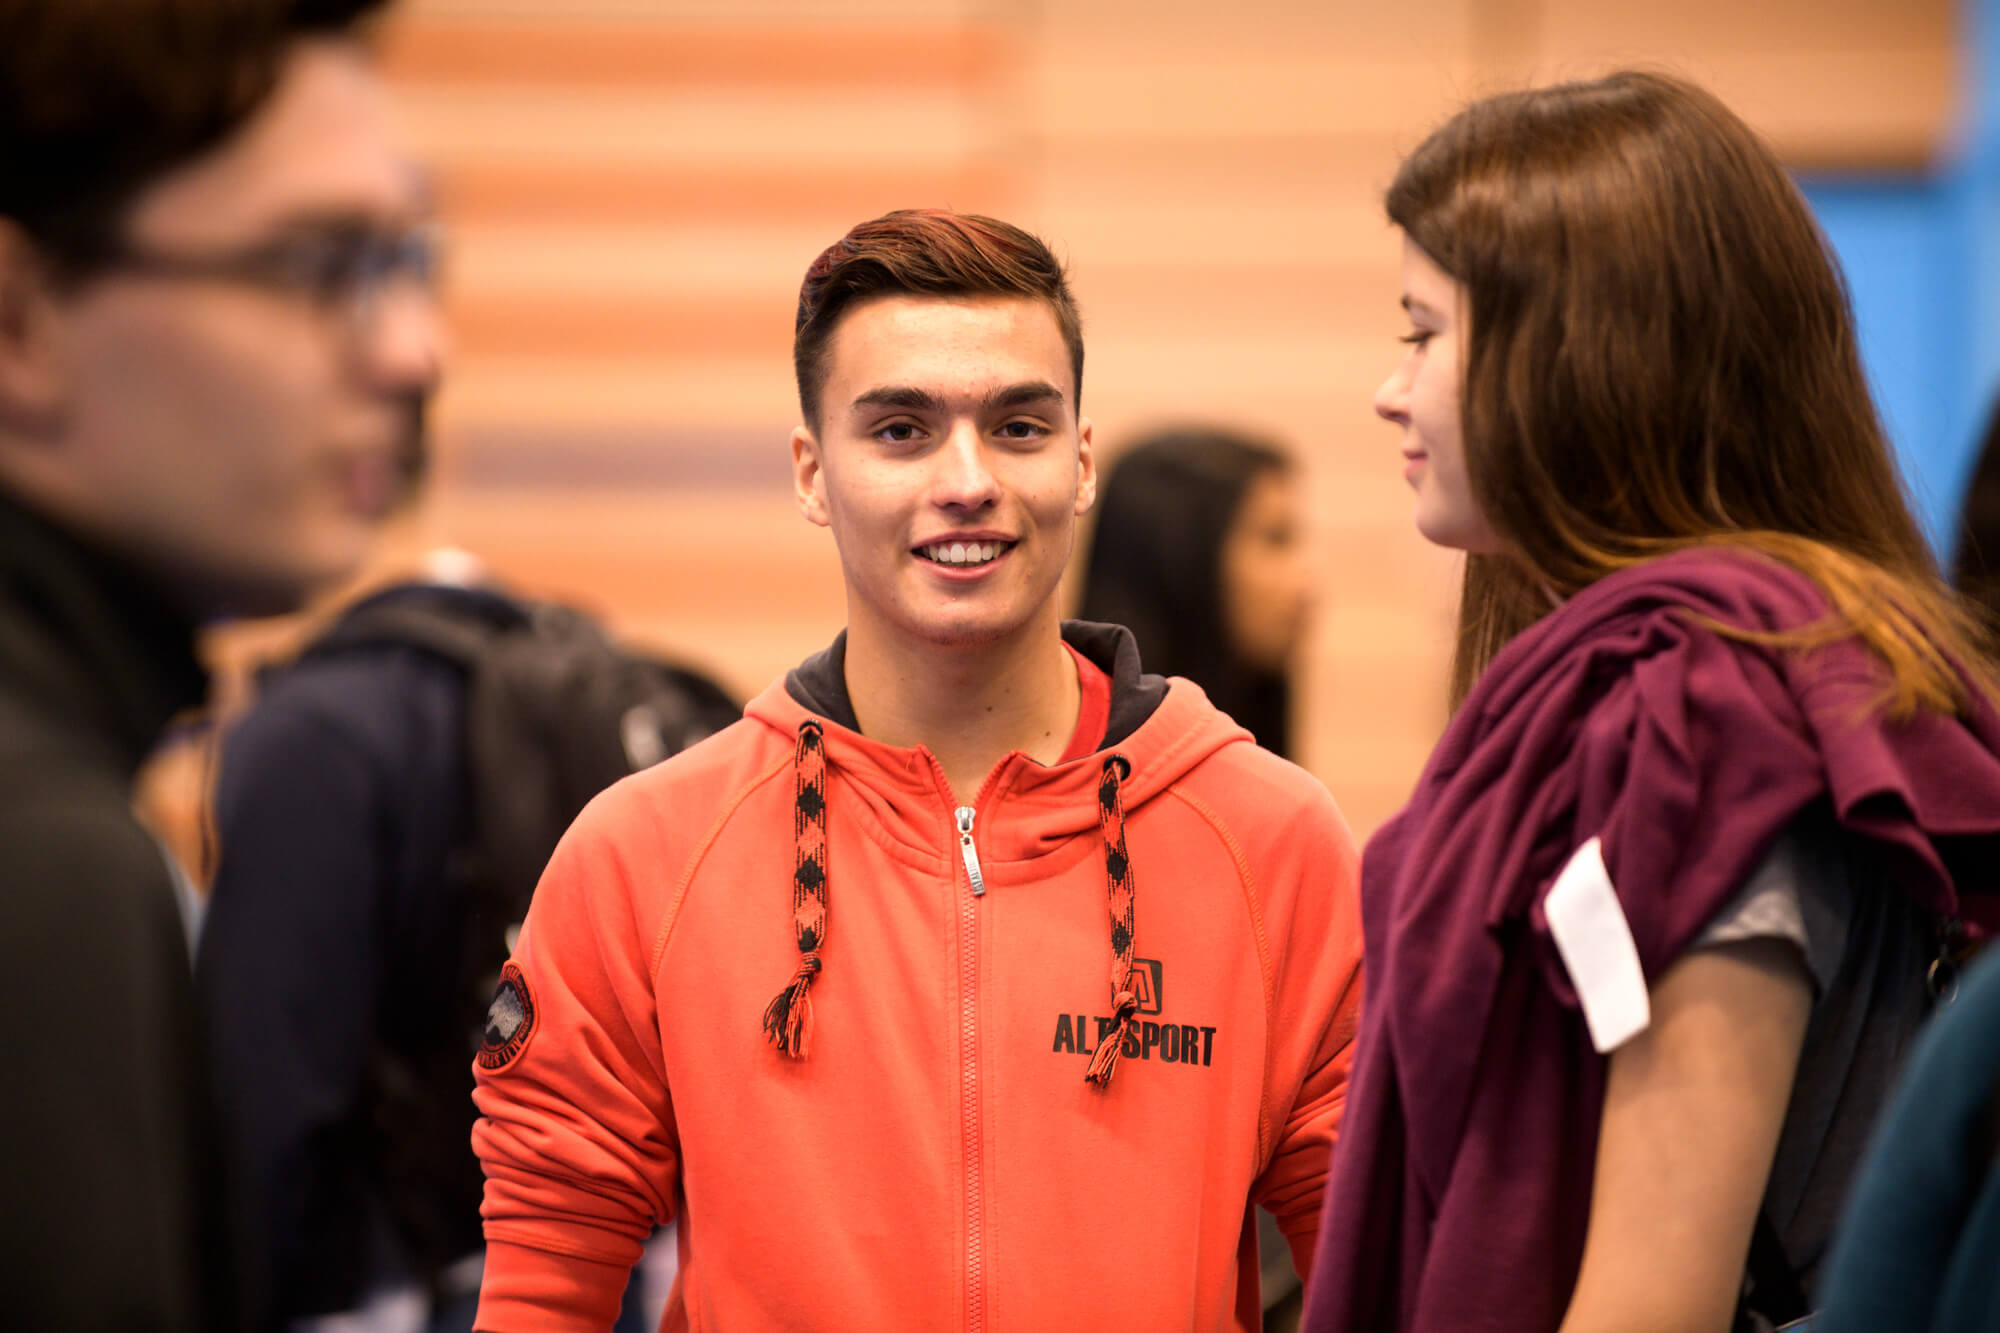 International male student at the University of Derby's welcome event held at the Sport Centre, Kedleston Road.